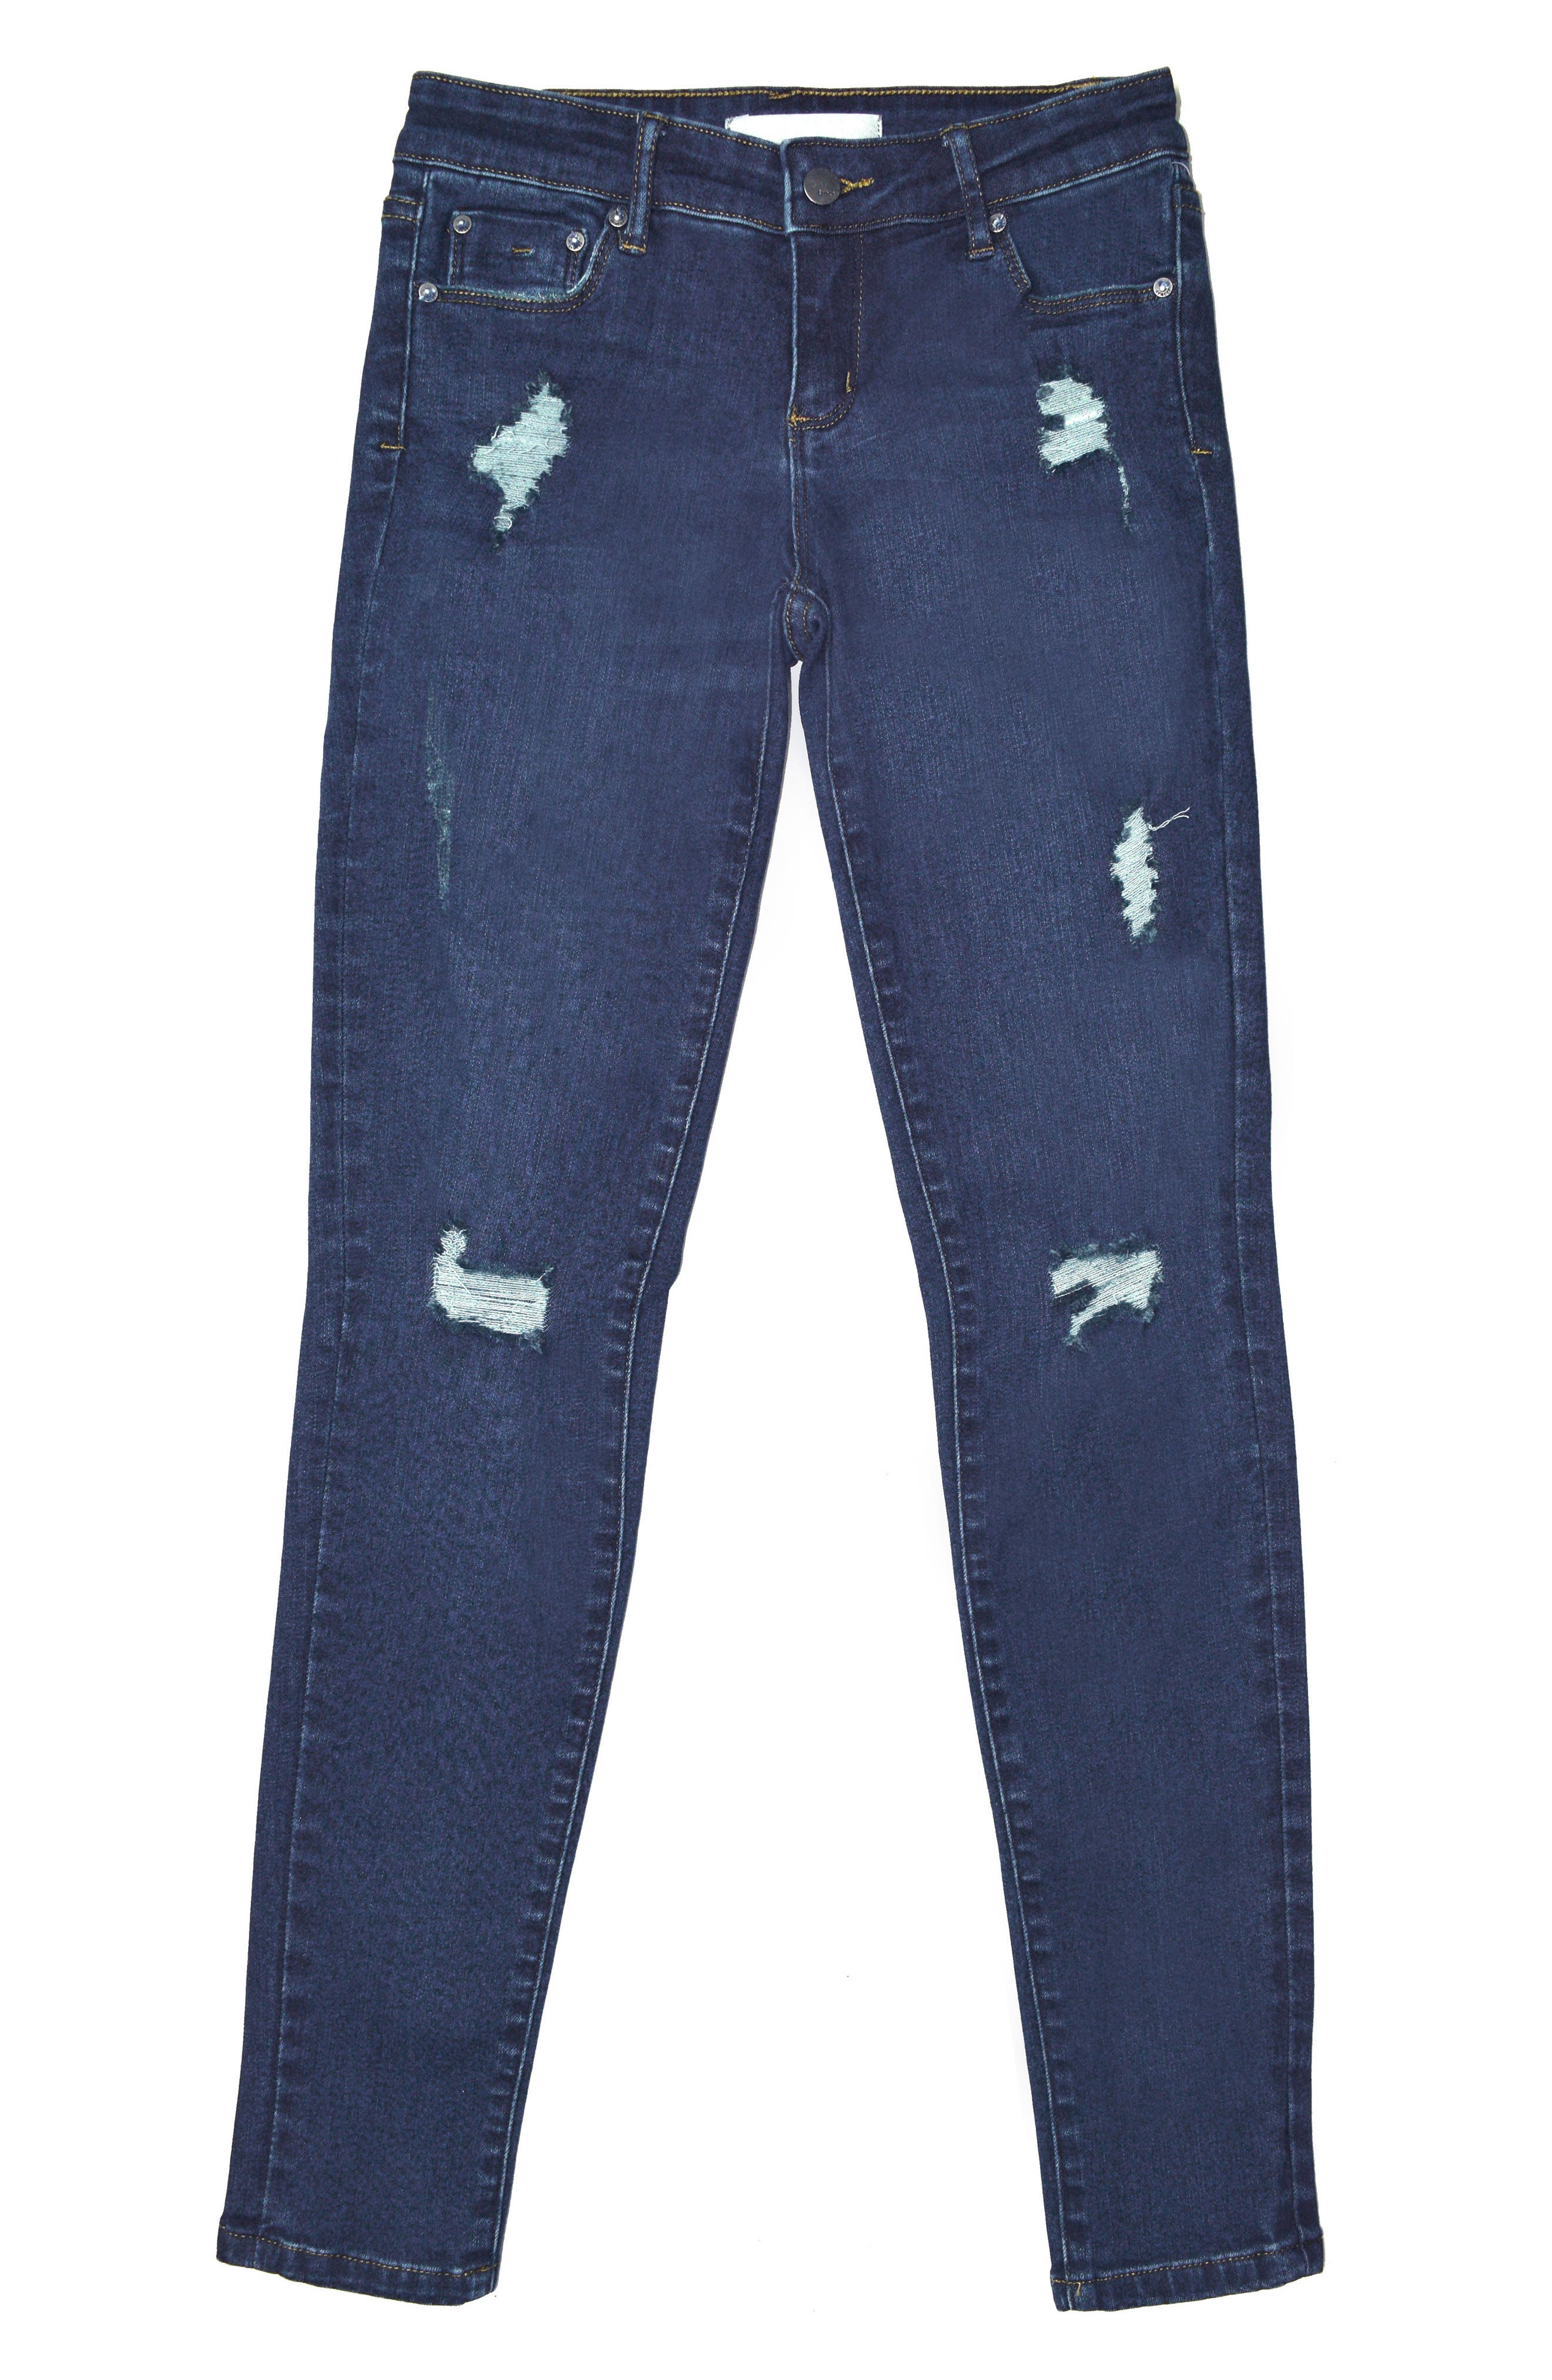 Alternate Image 1 Selected - Tractr Distressed Skinny Jeans (Big Girls)